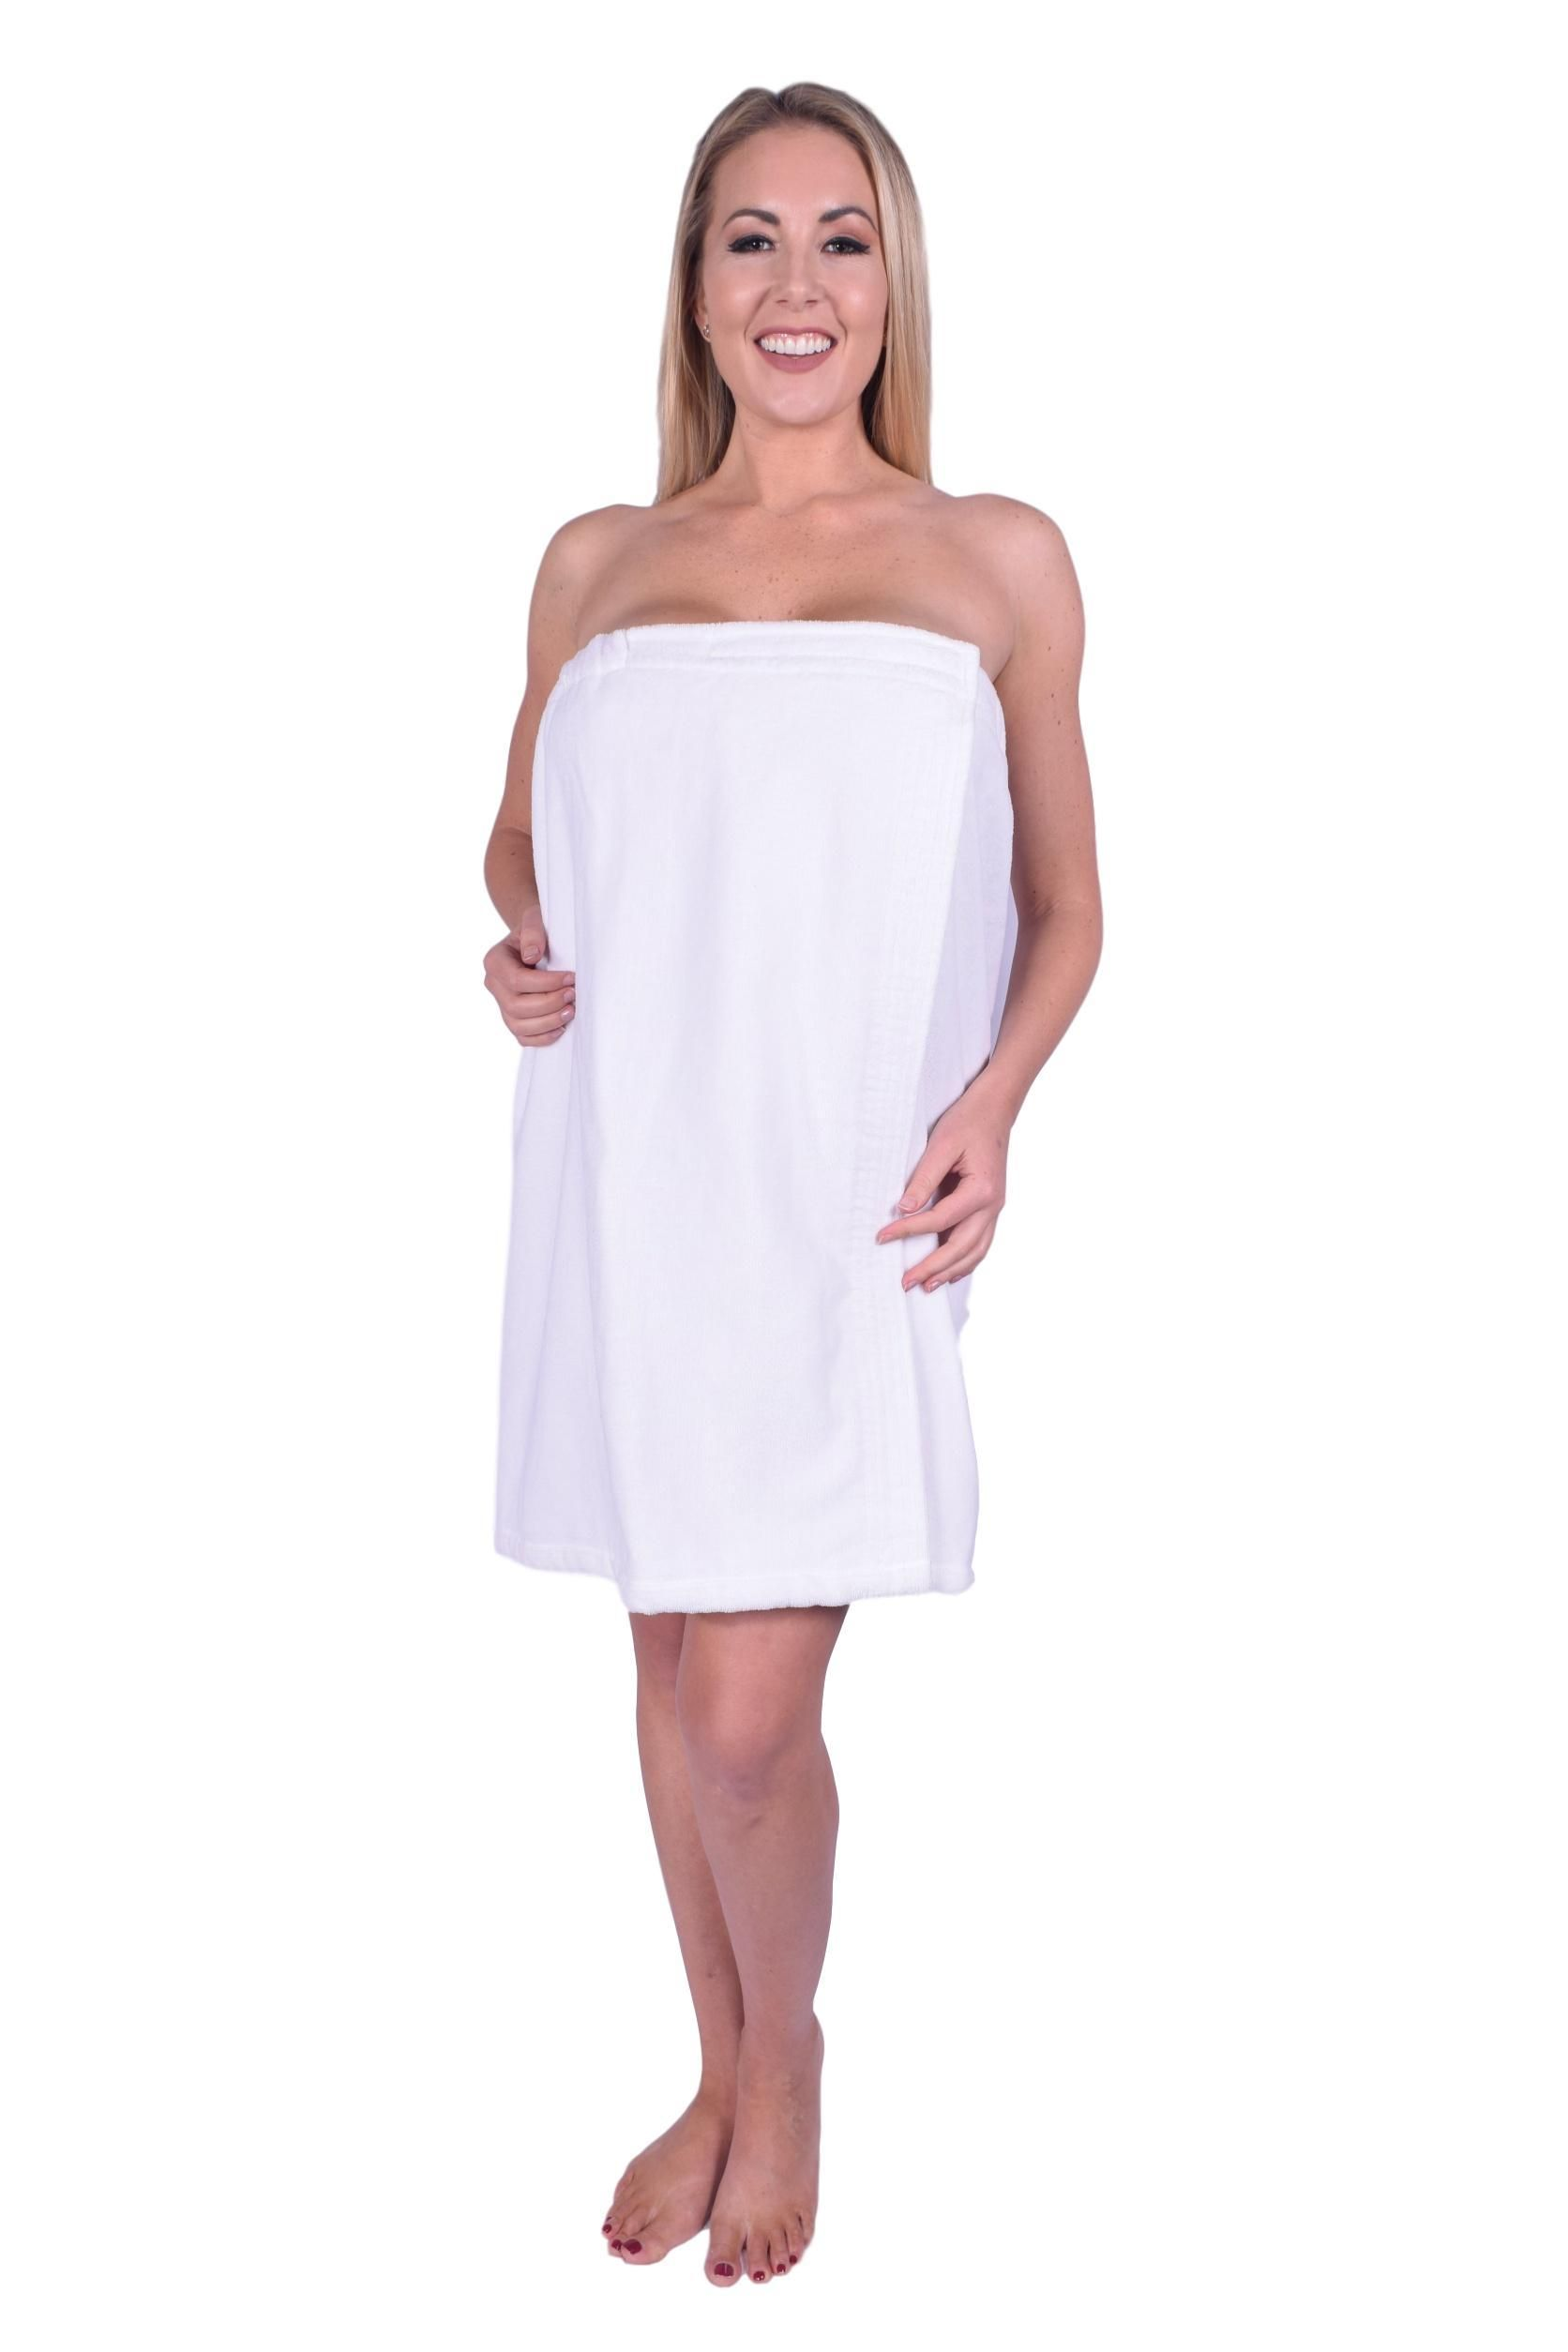 5c33b9a148 Puffy Cotton Terry Velour Cotton Spa Body Wrap ( Women ) - White ...